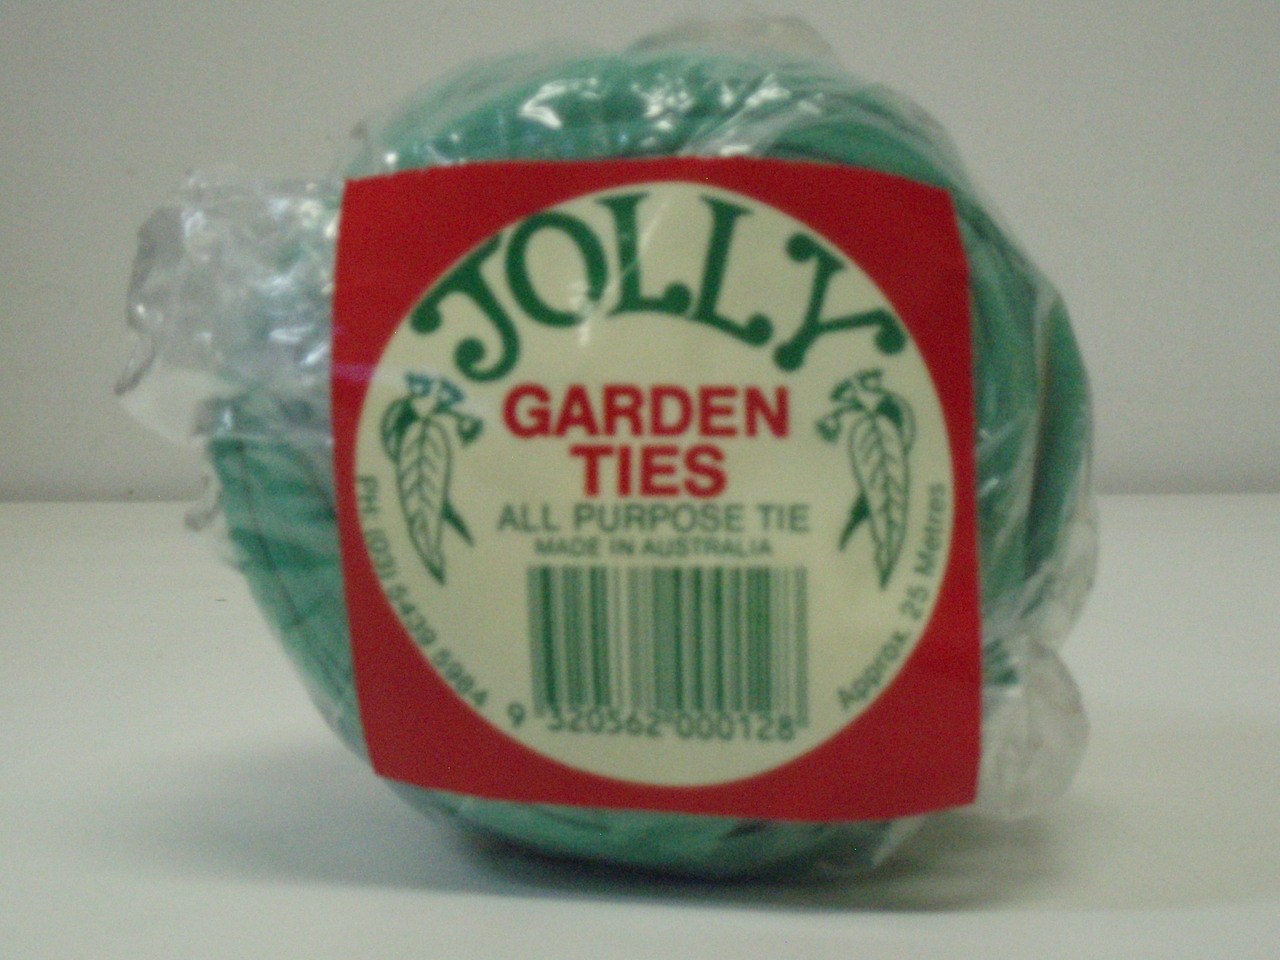 Jolly Ties